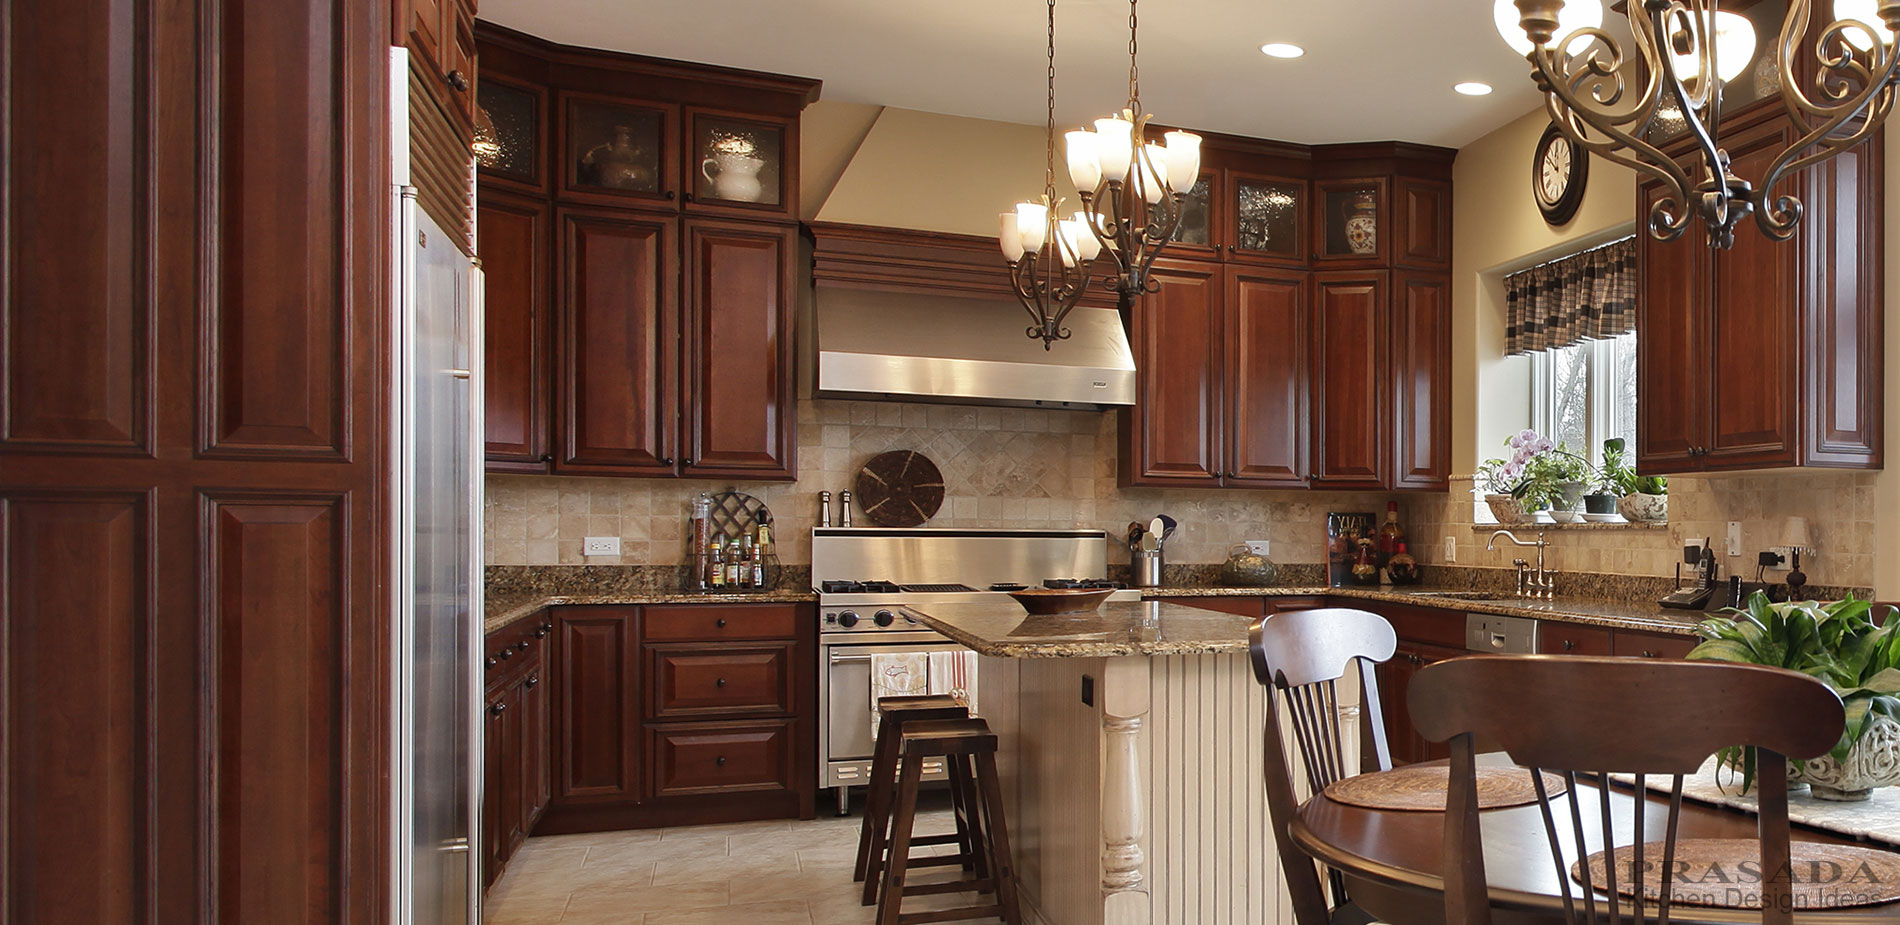 Prasada Kitchens And Fine Cabinetry: Kitchen Cabinetry Mississauga Ontario